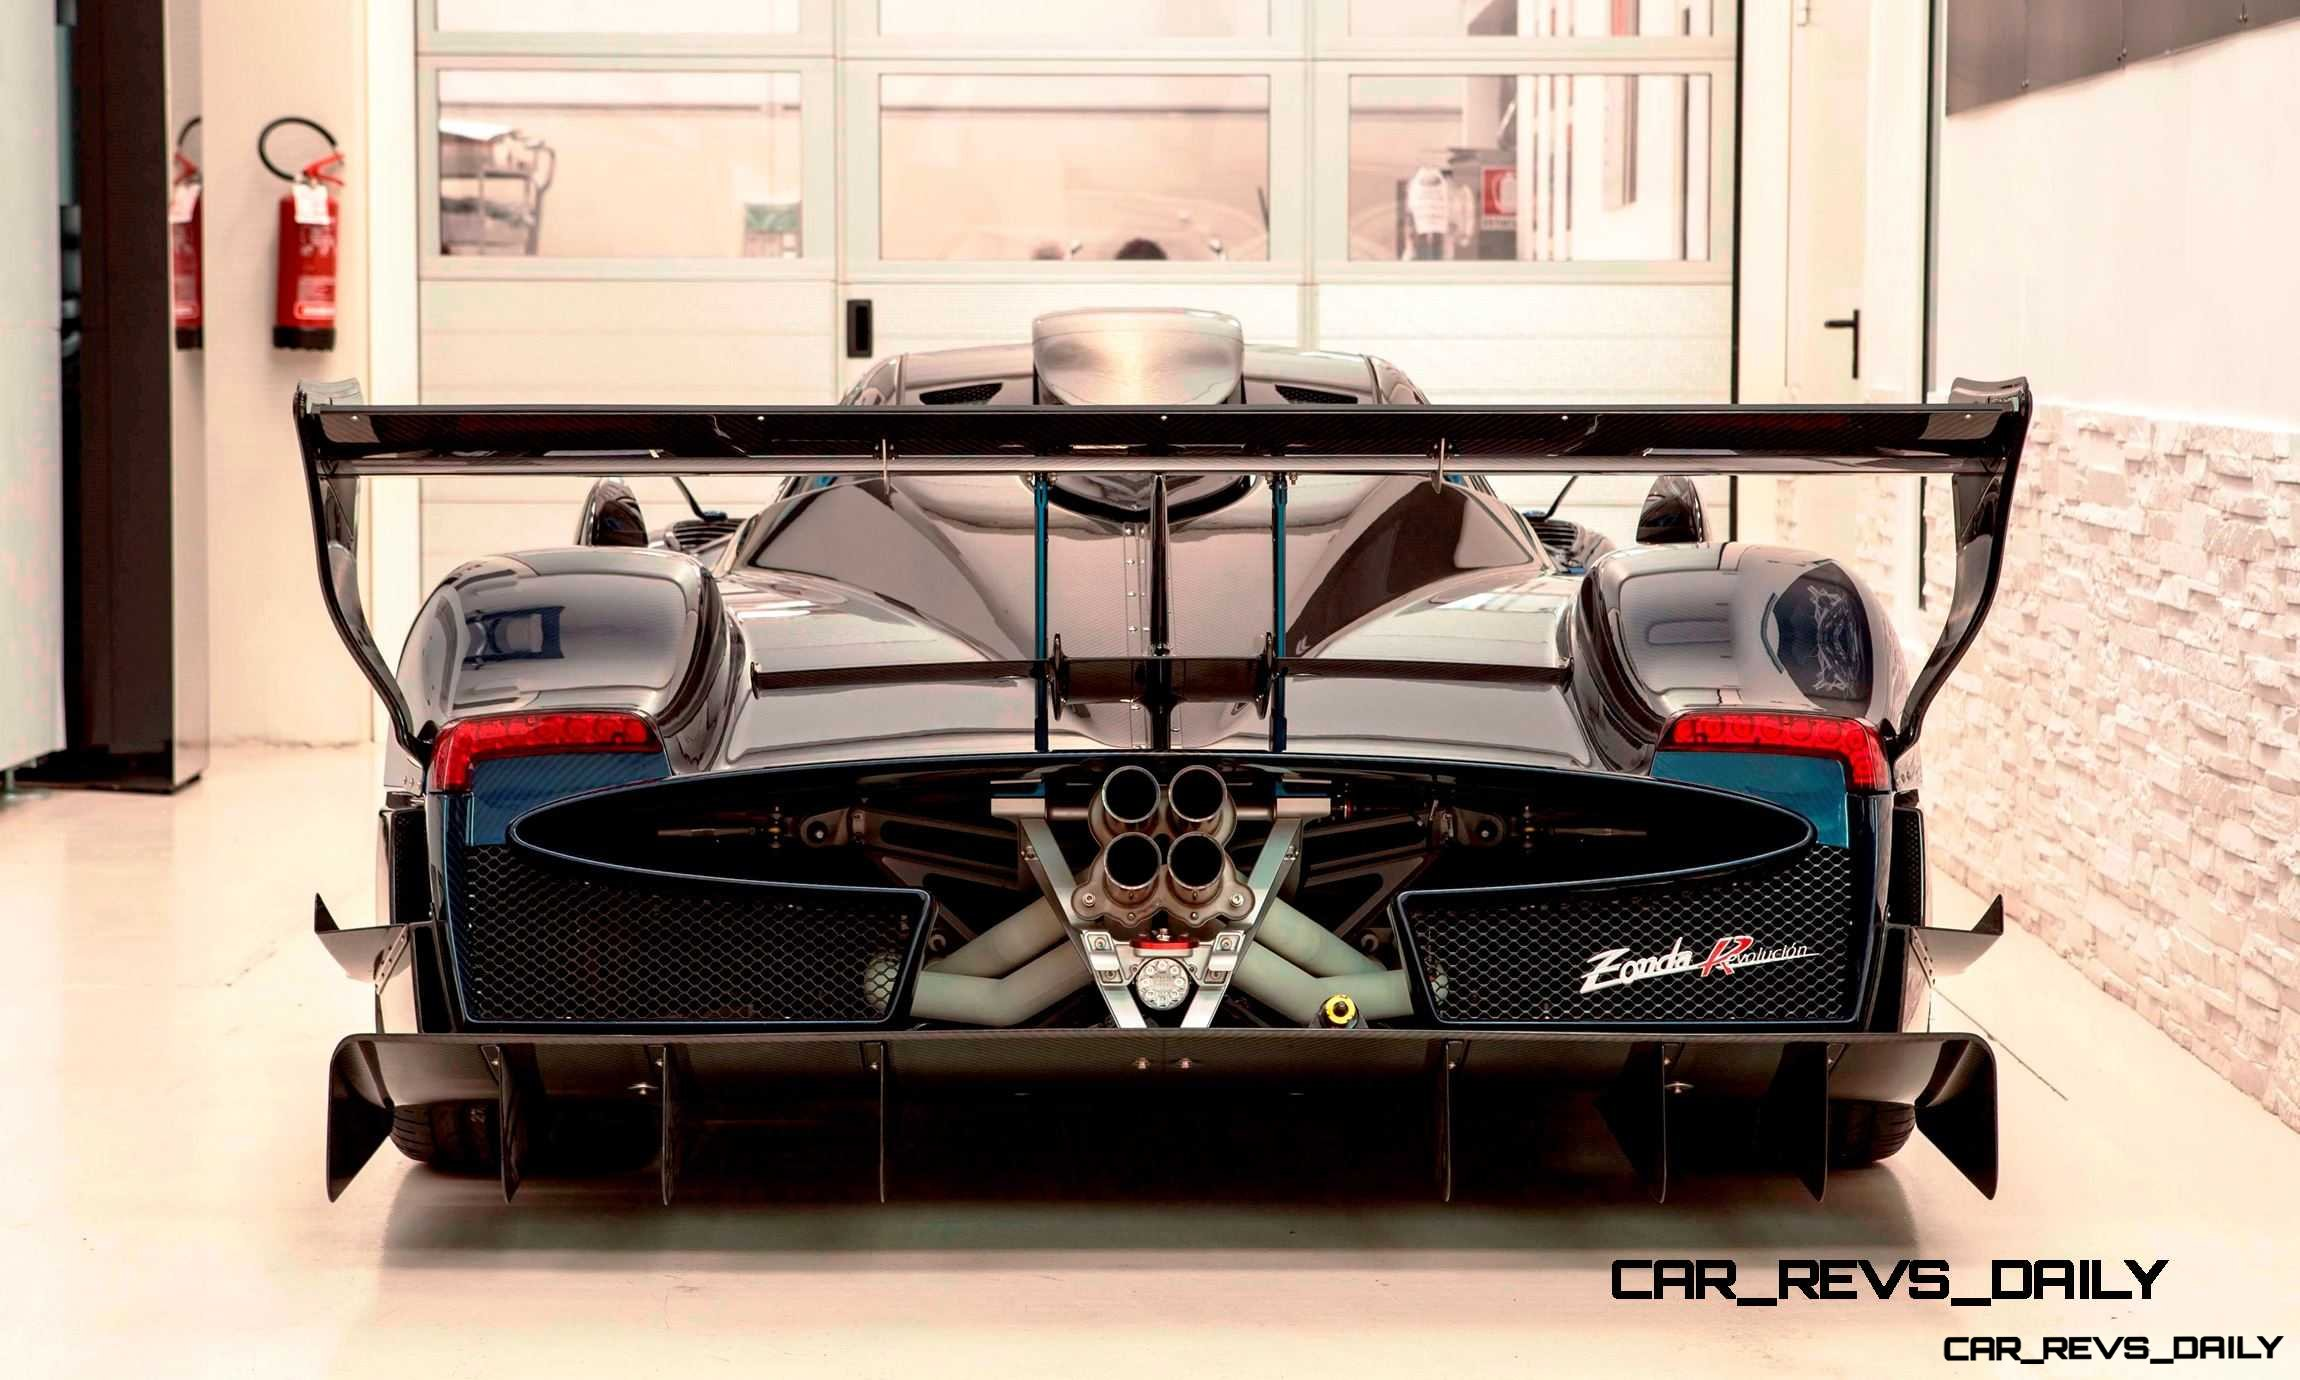 2014 Pagani Zonda Revolucion Adds DRS Dynamic Downforce + 50HP for Ultimate Time-Attack Prowess